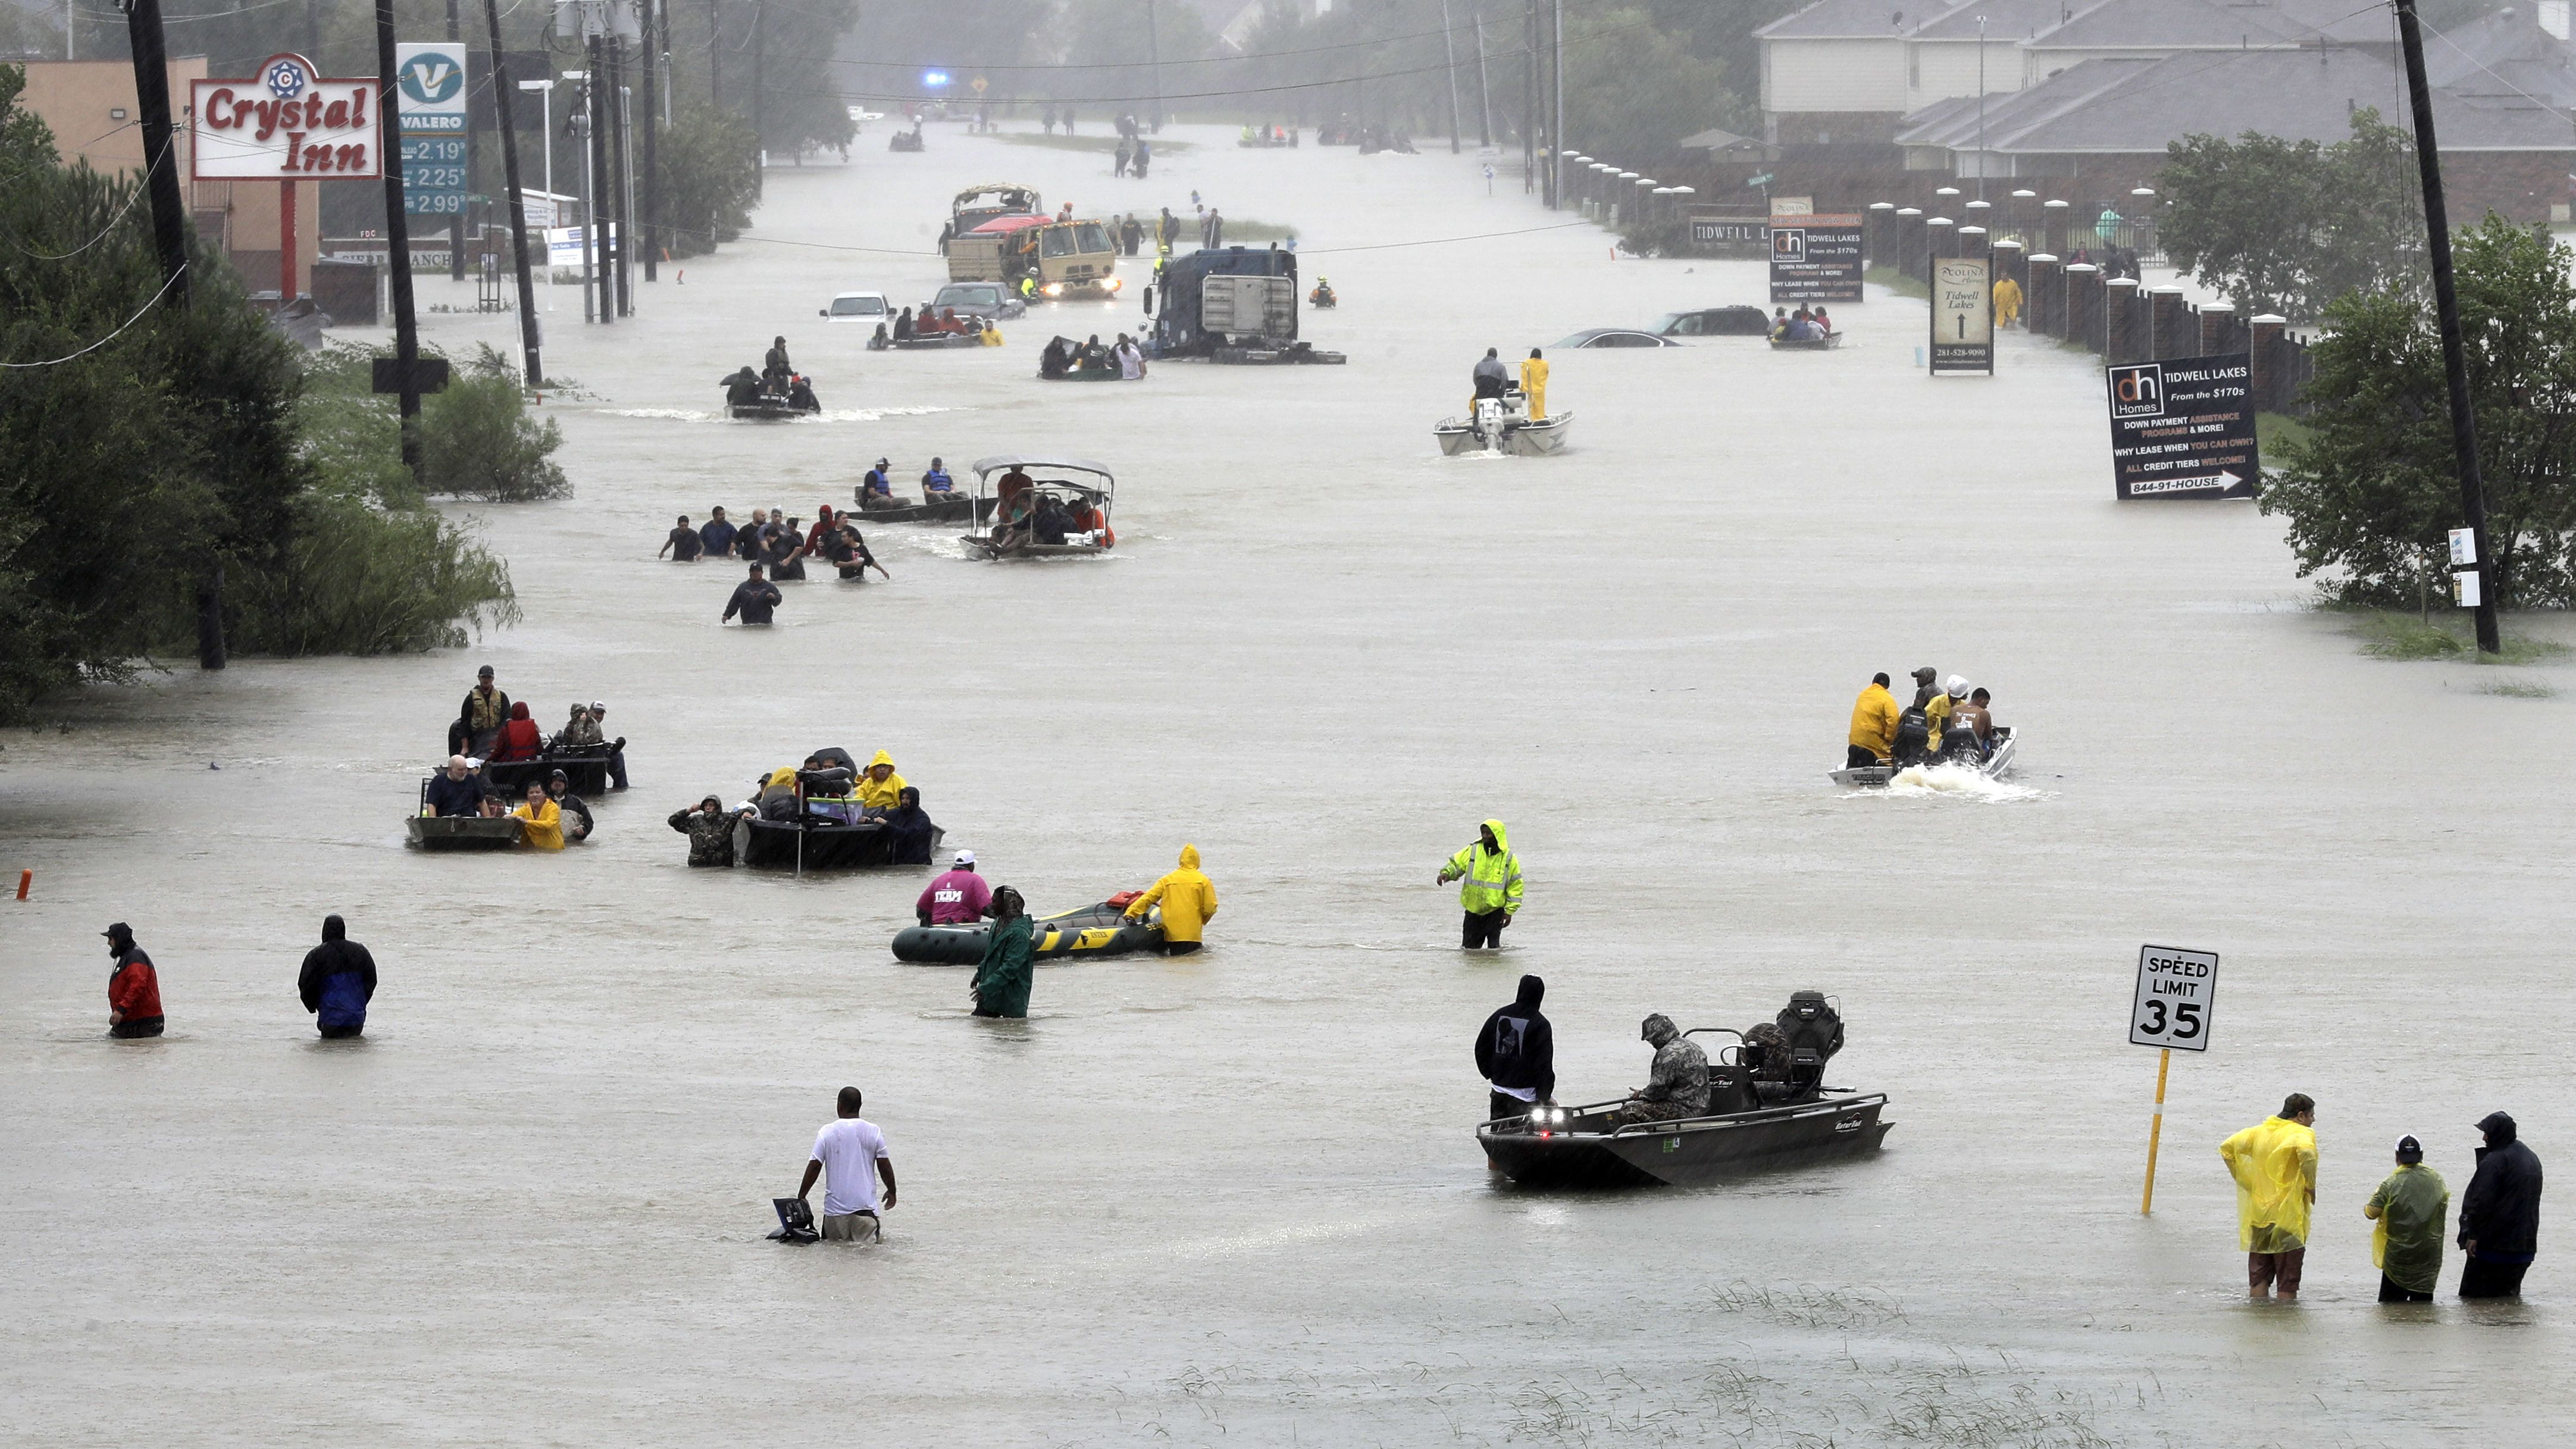 Rescue boats fill a flooded street at flood victims are evacuated as floodwaters from Tropical Storm Harvey rise Monday, Aug. 28, 2017, in Houston.